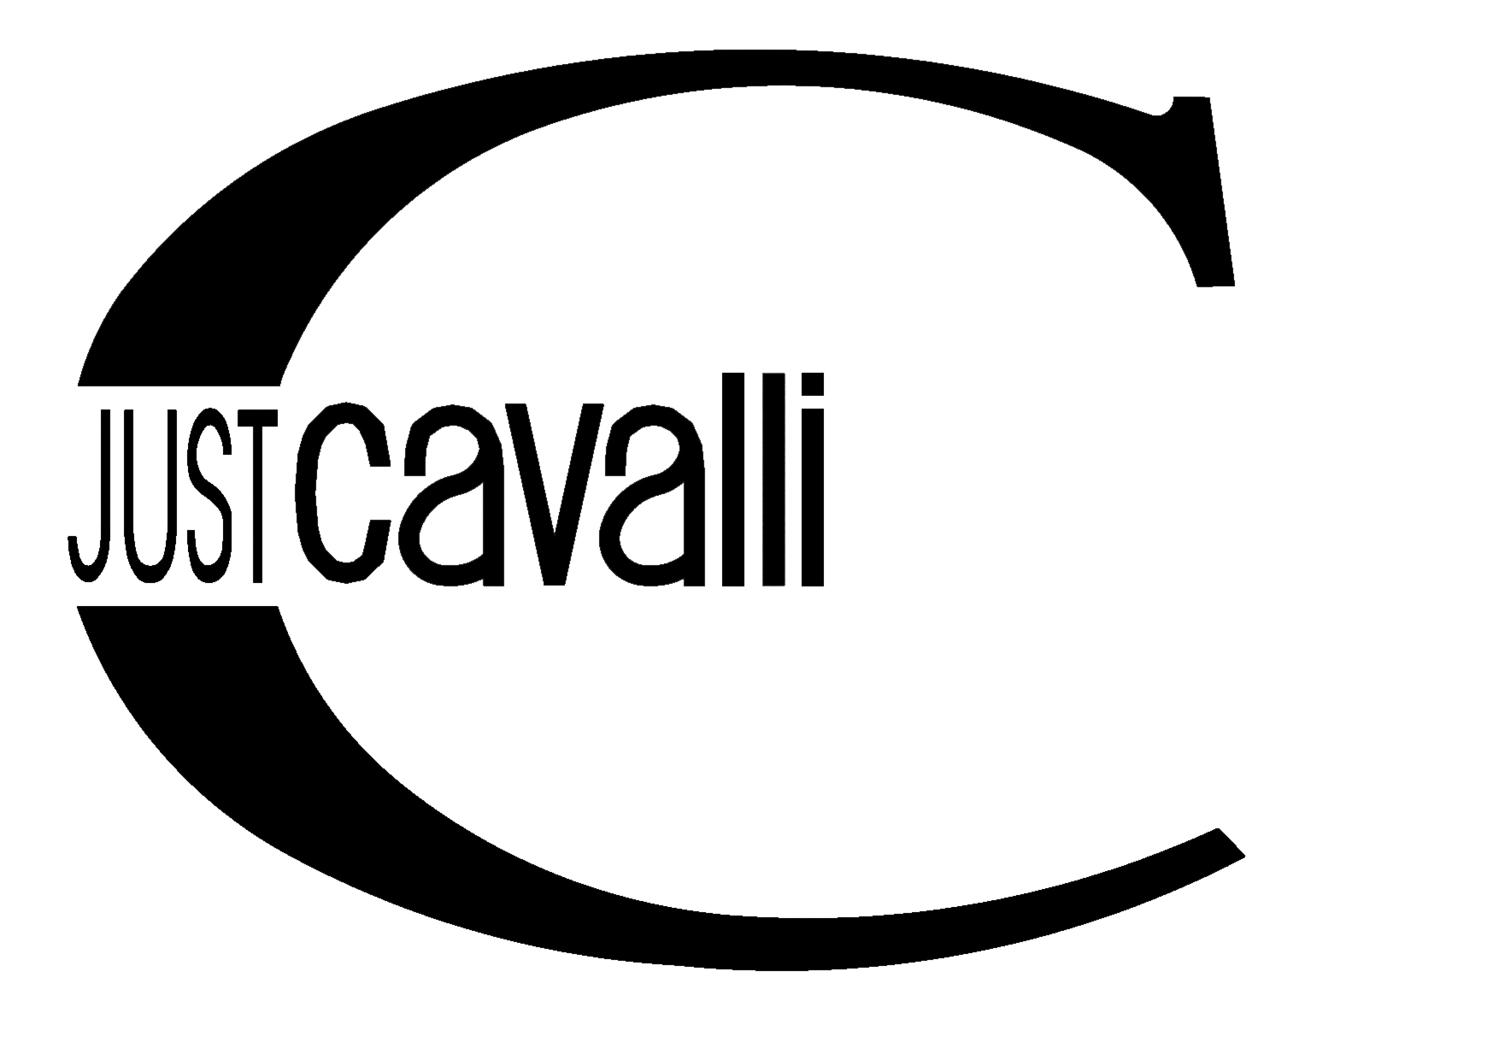 http://tobal.net/wp-content/uploads/2004/08/logo-cavalli-copia.jpg